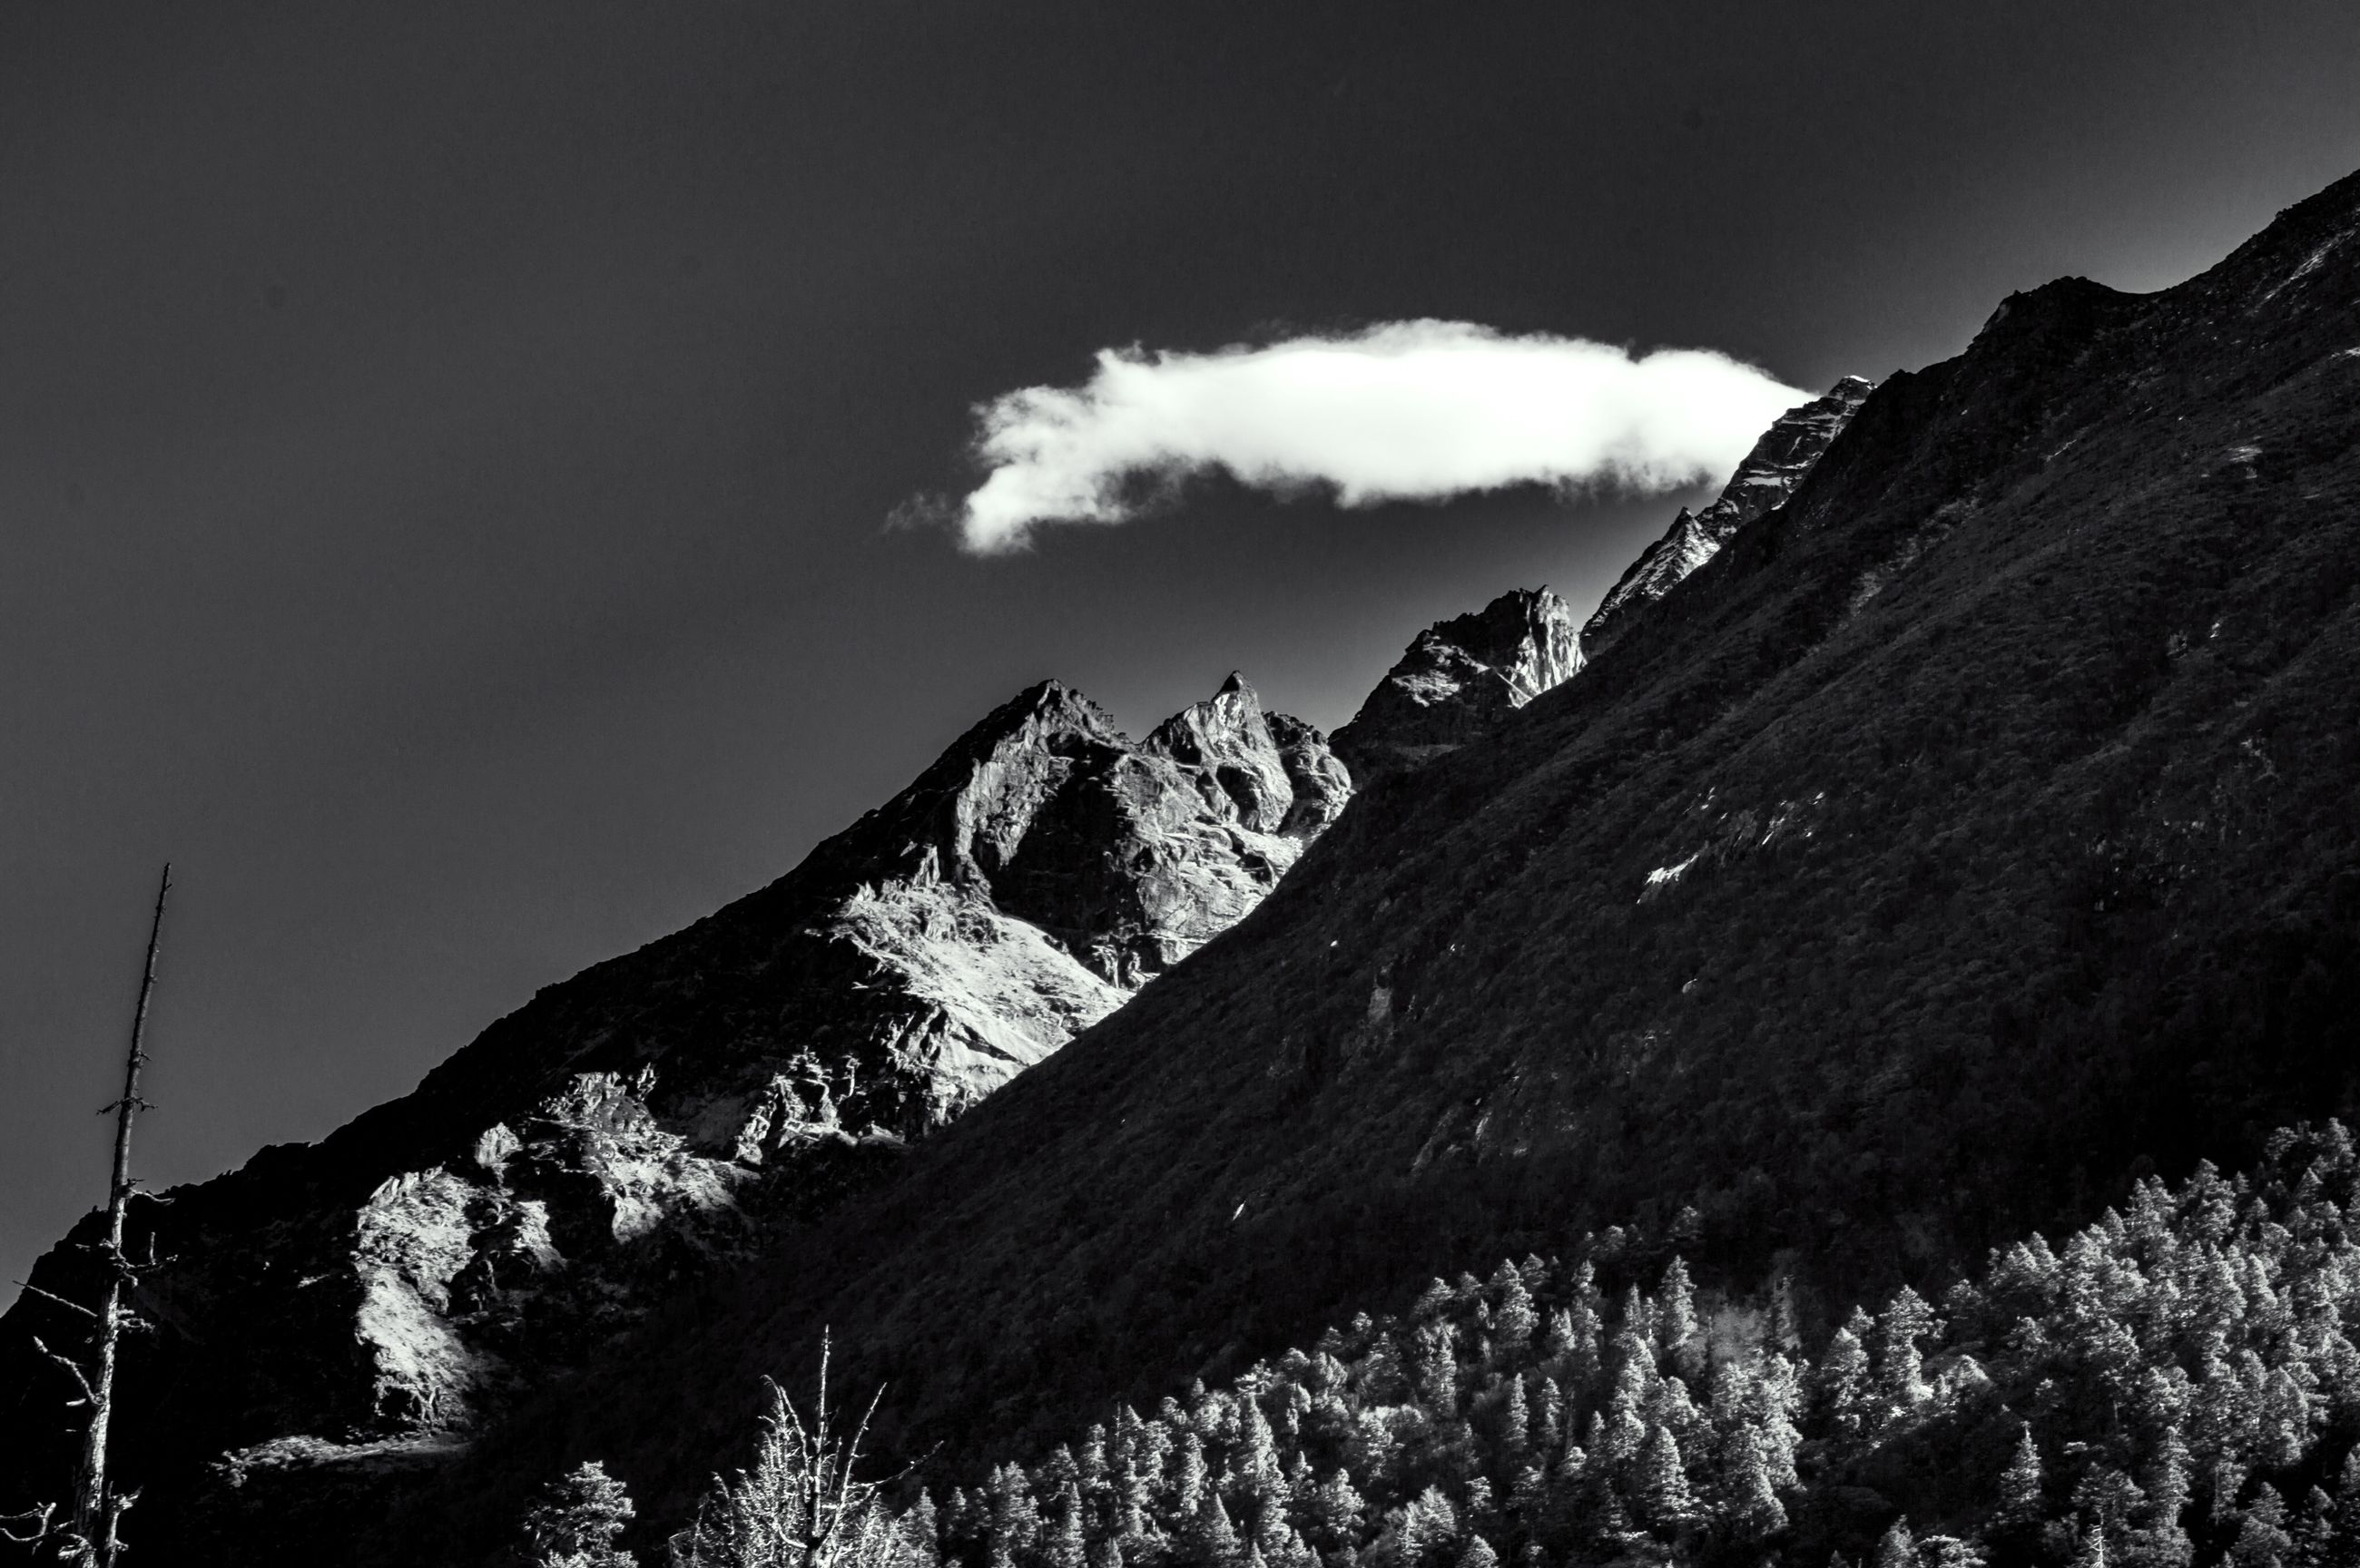 mountain, mountain range, sky, scenics, tranquil scene, tranquility, beauty in nature, snowcapped mountain, nature, landscape, rocky mountains, non-urban scene, cloud - sky, mountain peak, physical geography, weather, idyllic, cloud, majestic, season, remote, geology, day, rock formation, outdoors, no people, cloudy, non urban scene, snowcapped, blue